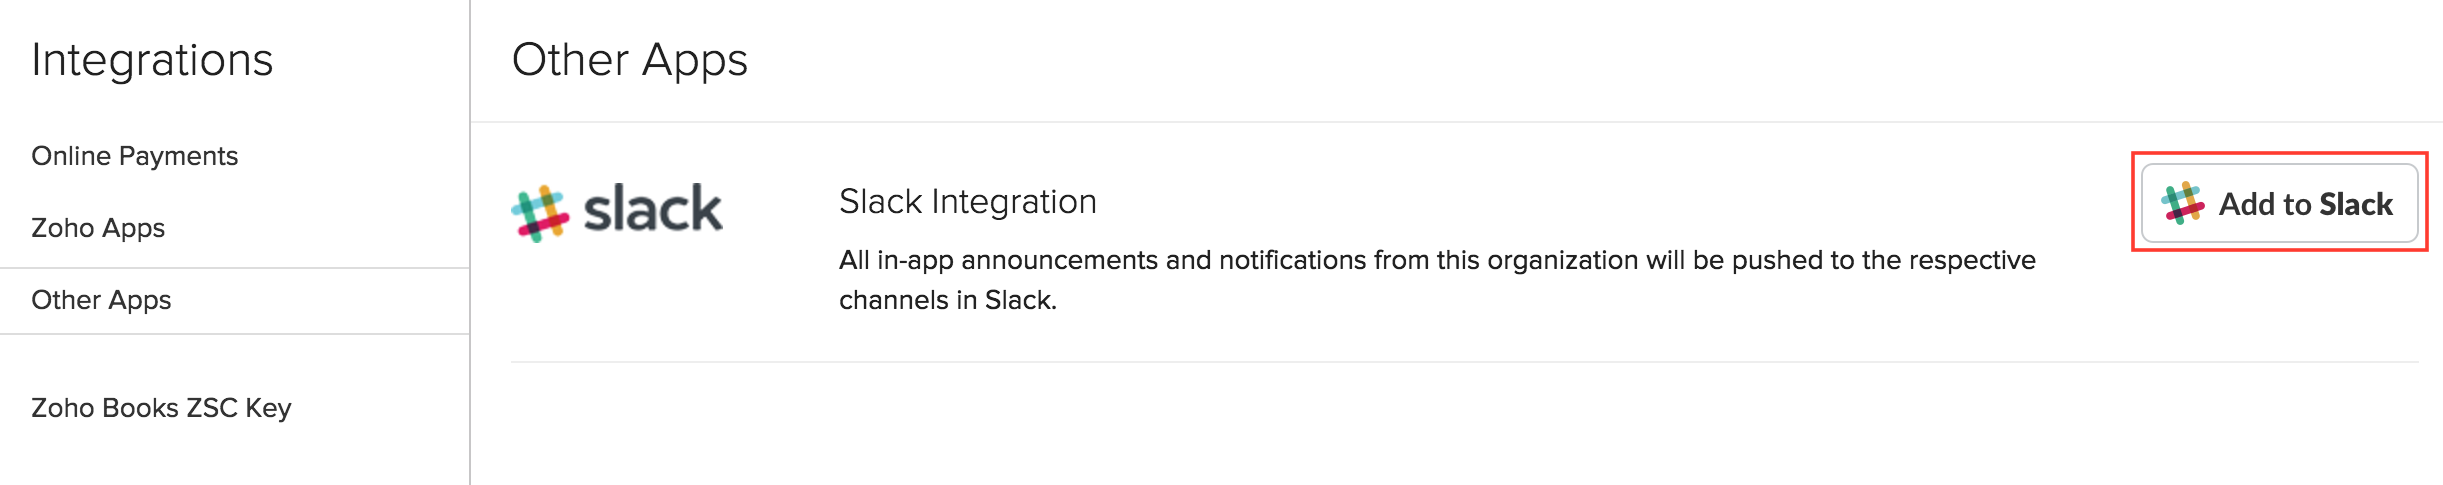 Add to Slack button